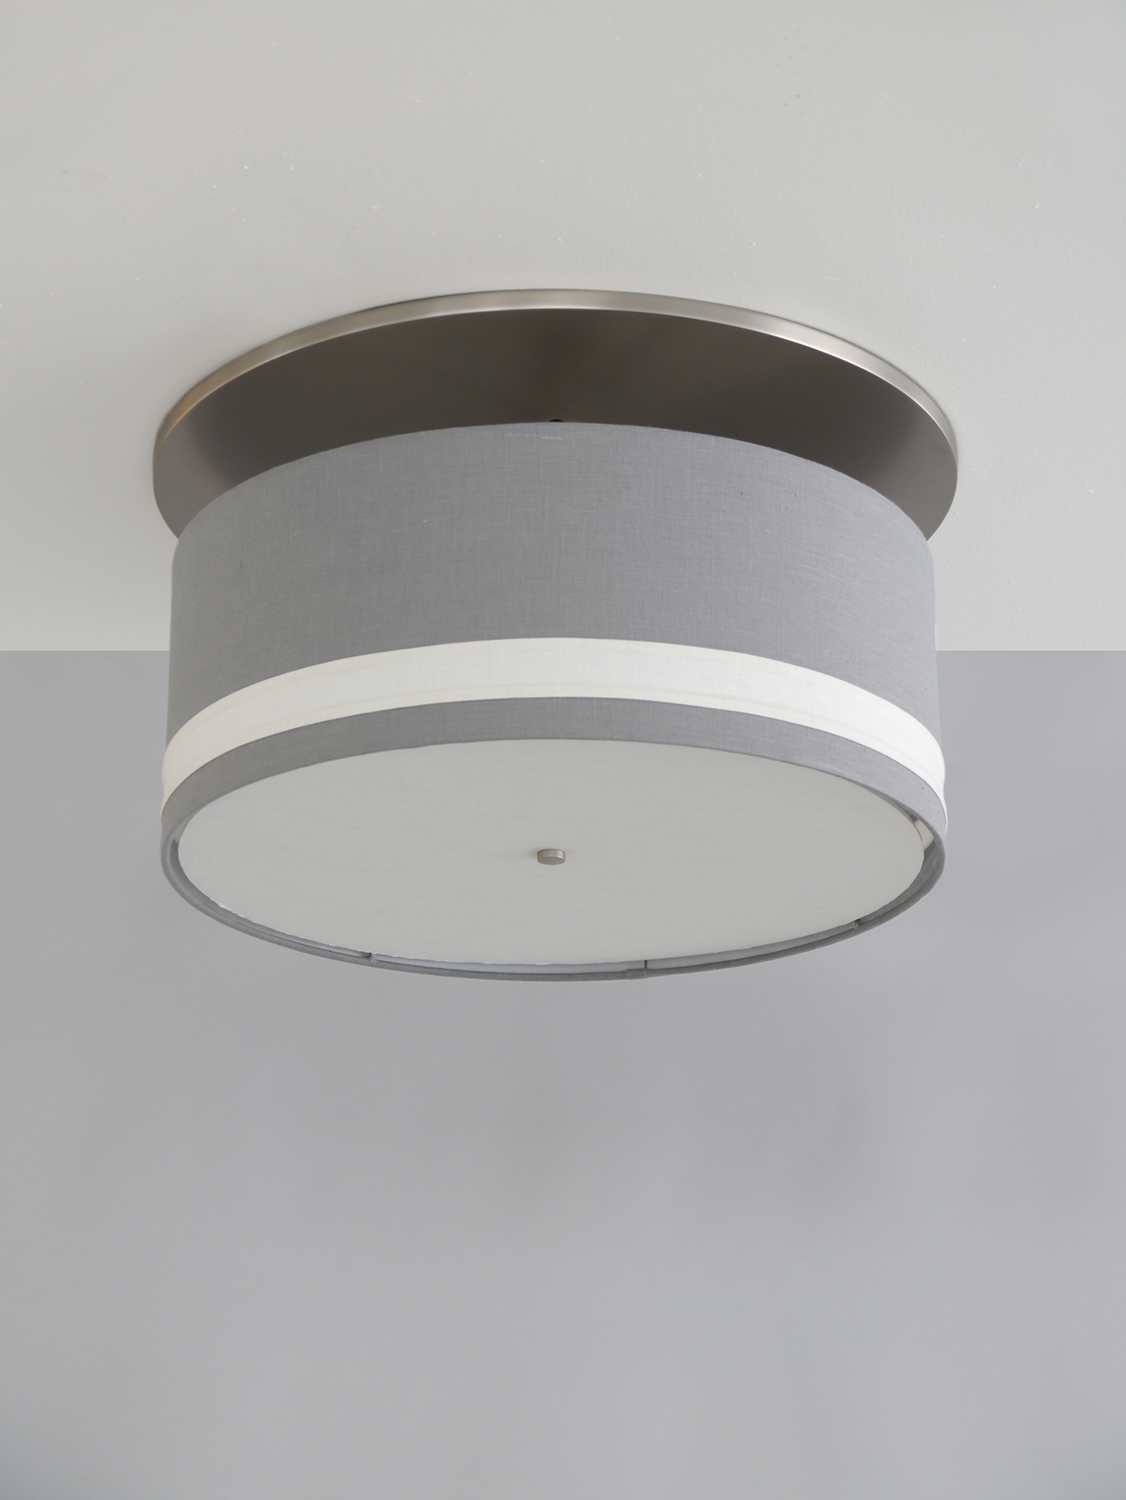 Striped_C-103_Striped Drum Ceiling Fixture w_ Large Canopy_Satin Nickel_Gray and White.jpg